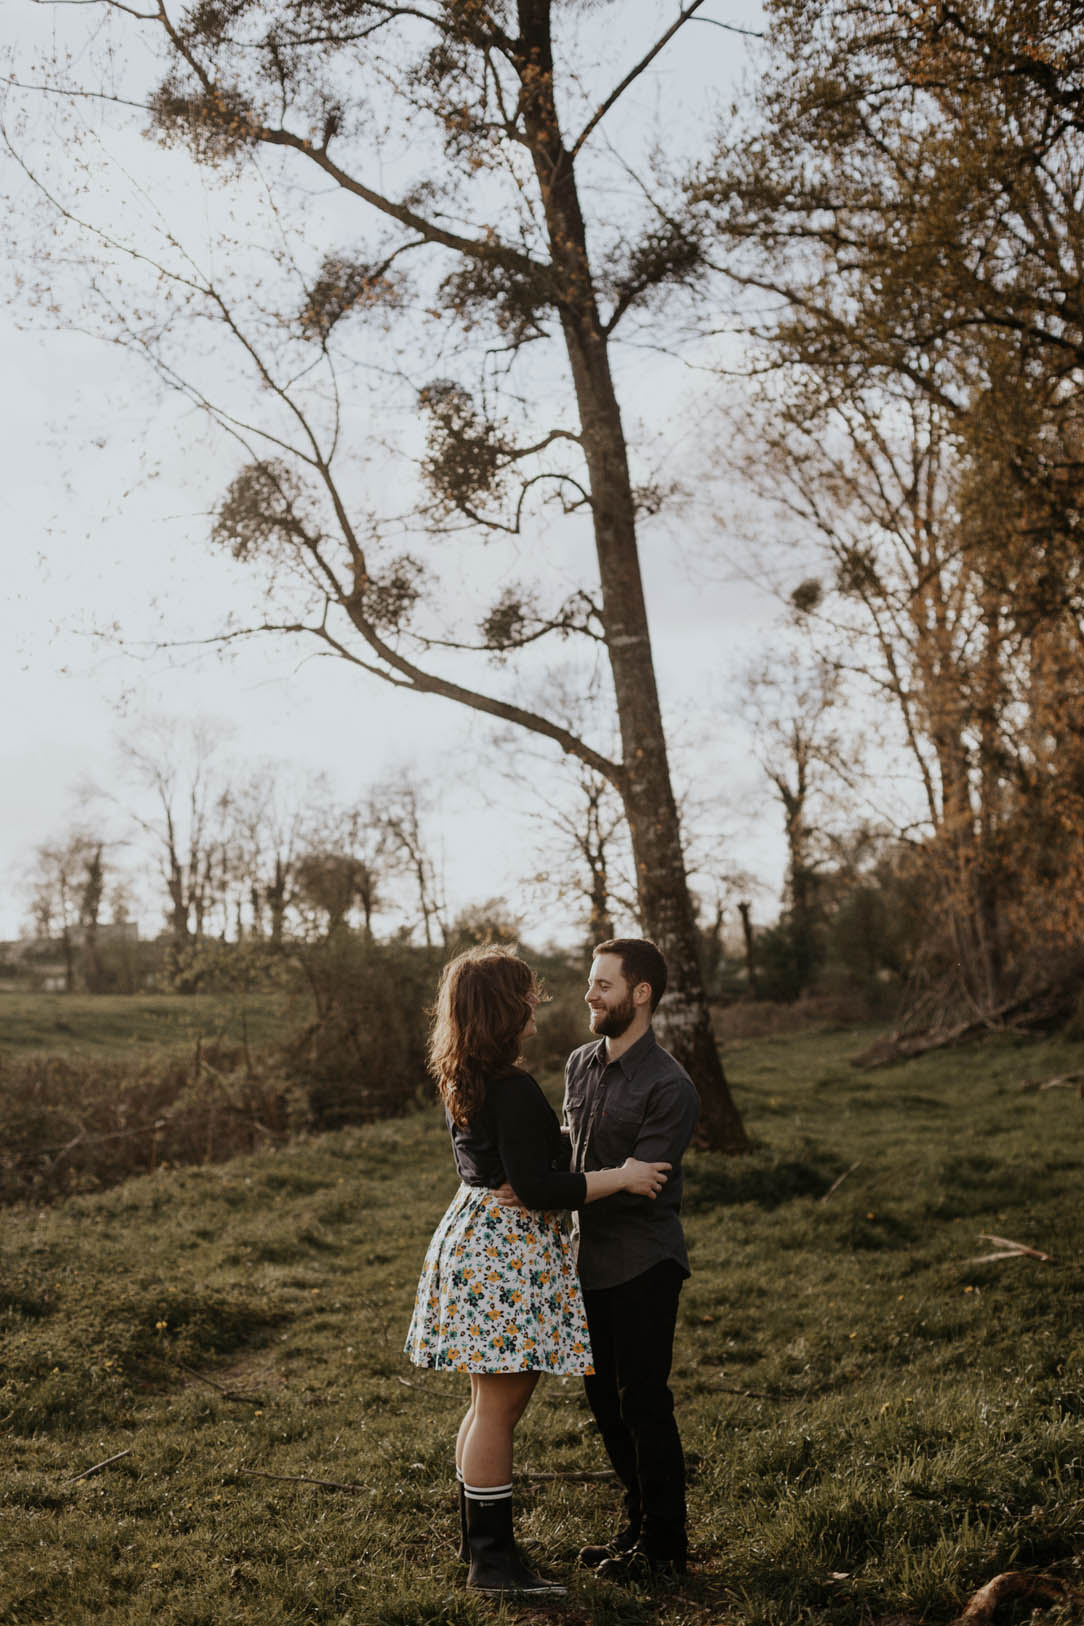 seance_engagement_campagne_vendee_flavie_nelly_photographe_nantes